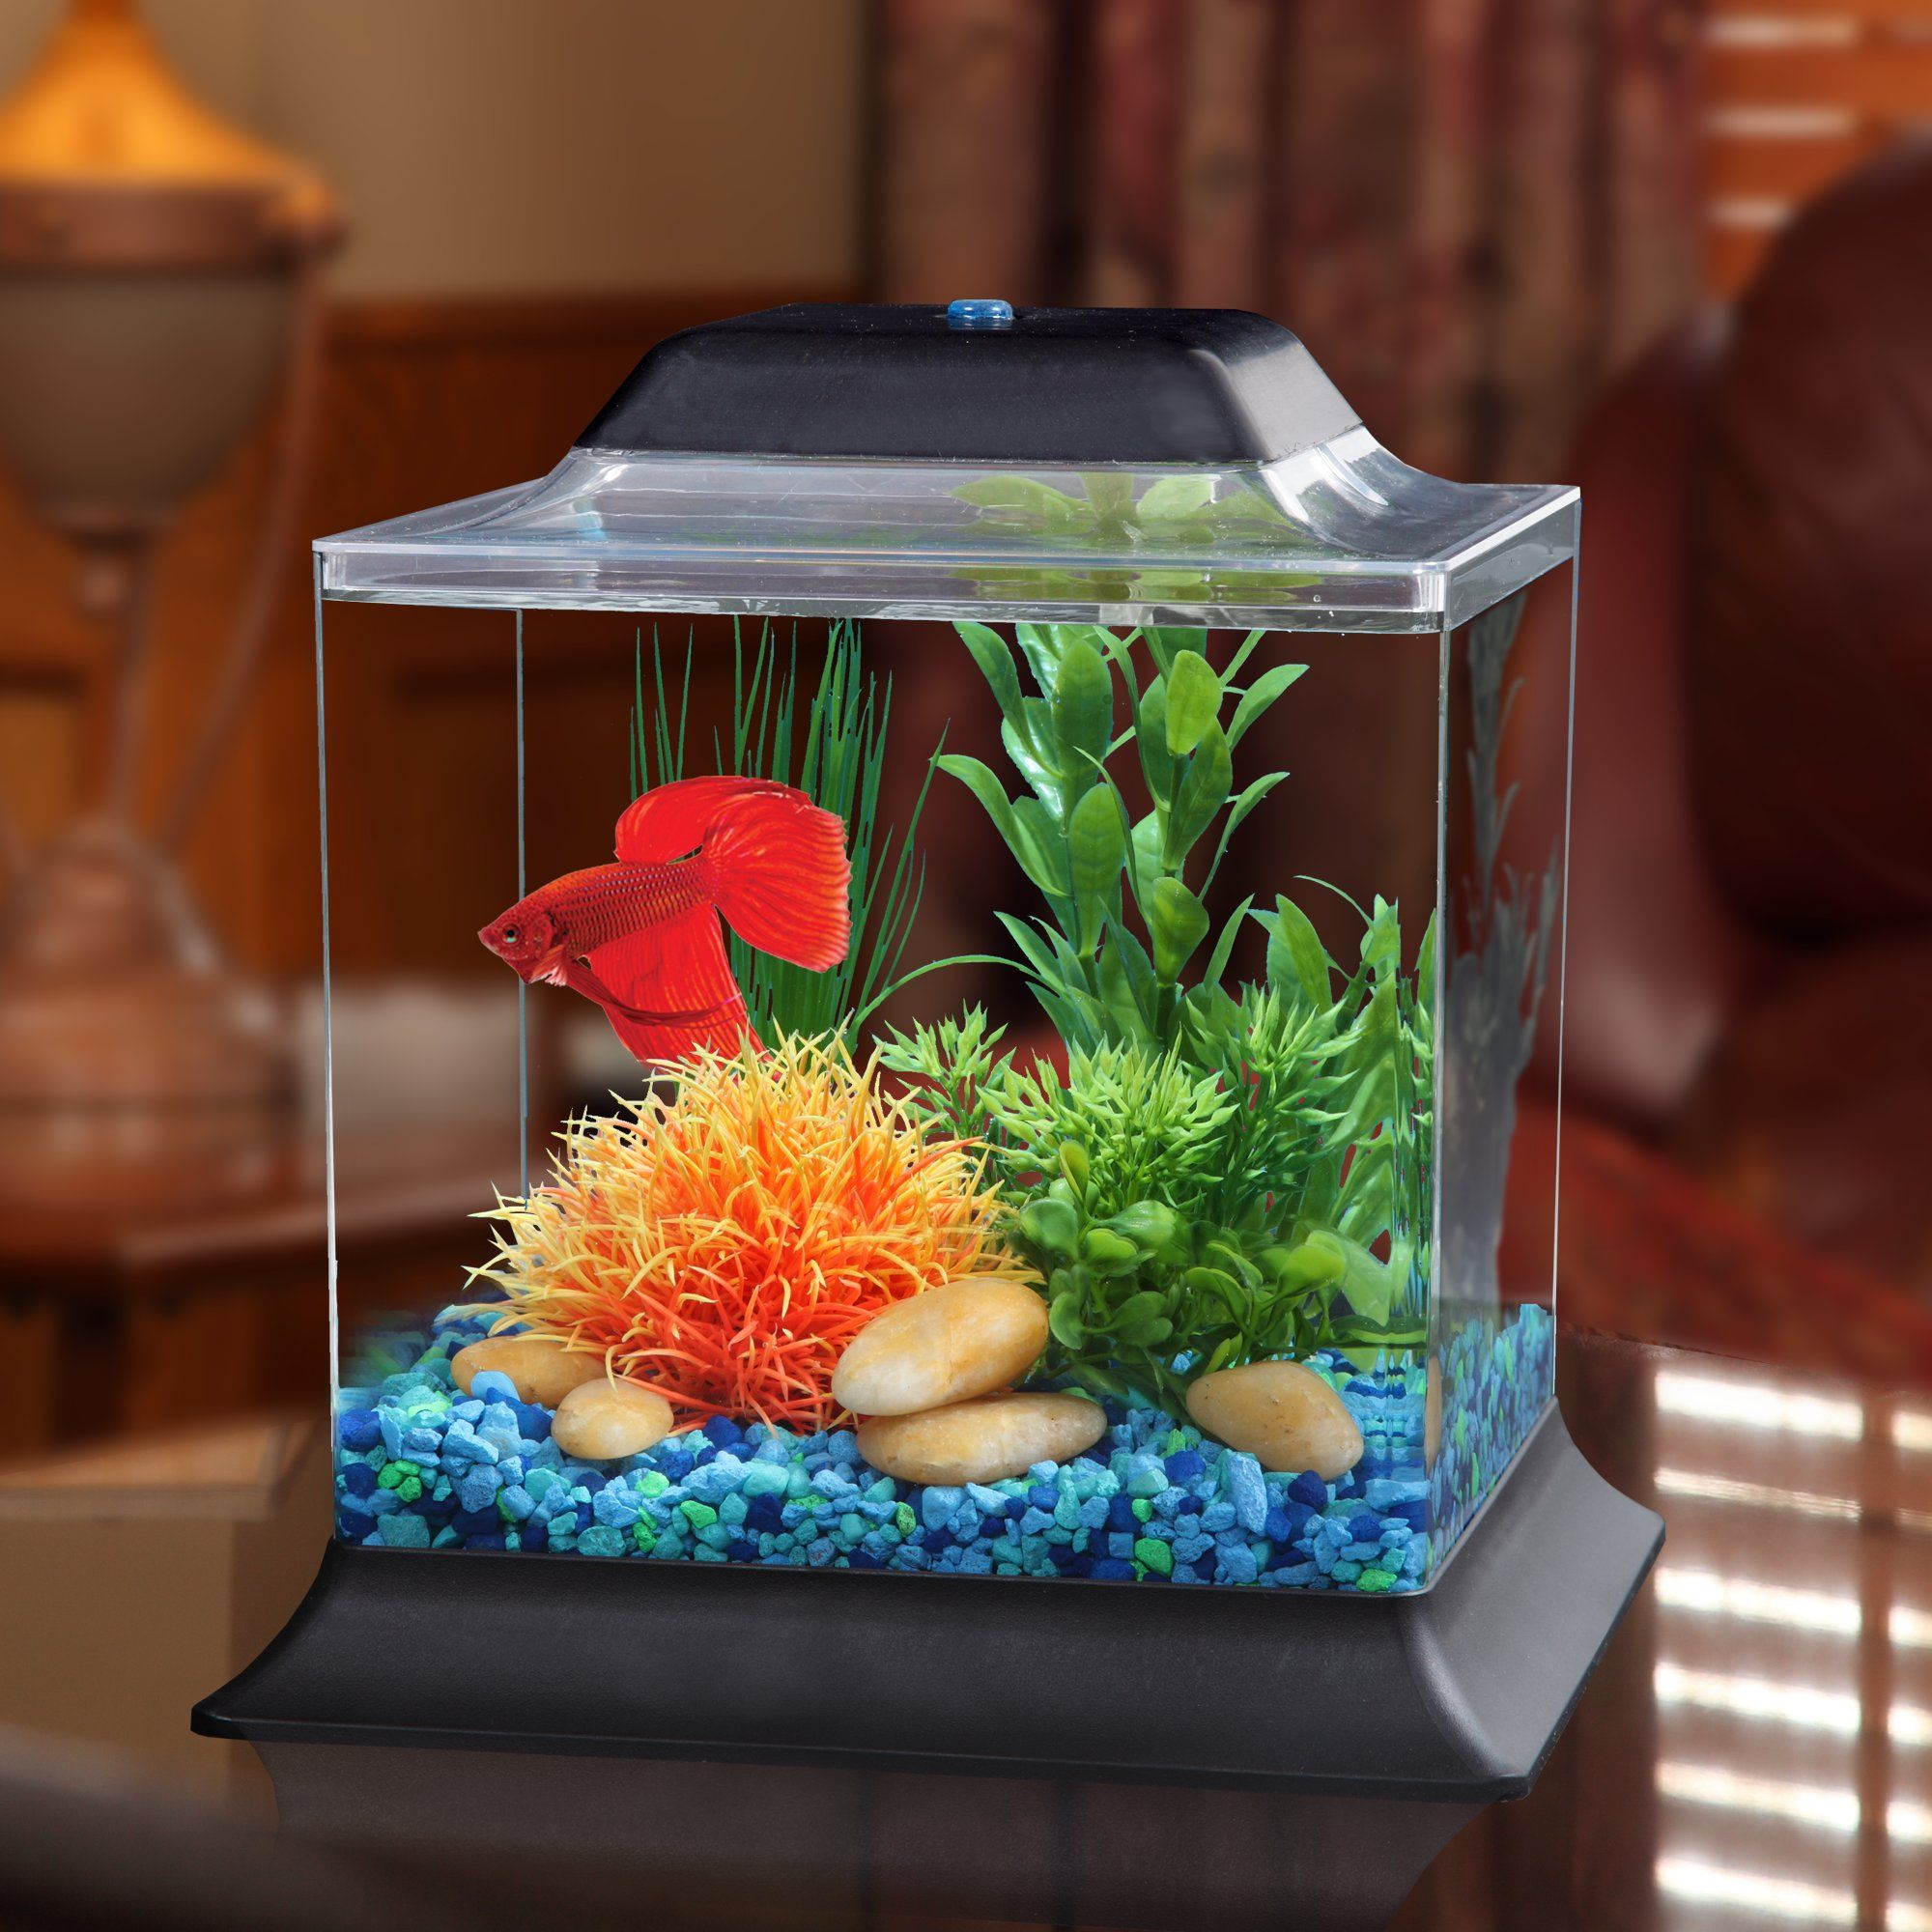 Imagitarium 1 4 Gallon Betta Aquarium Petco Betta Aquarium Betta Fish Tank Small Fish Tanks